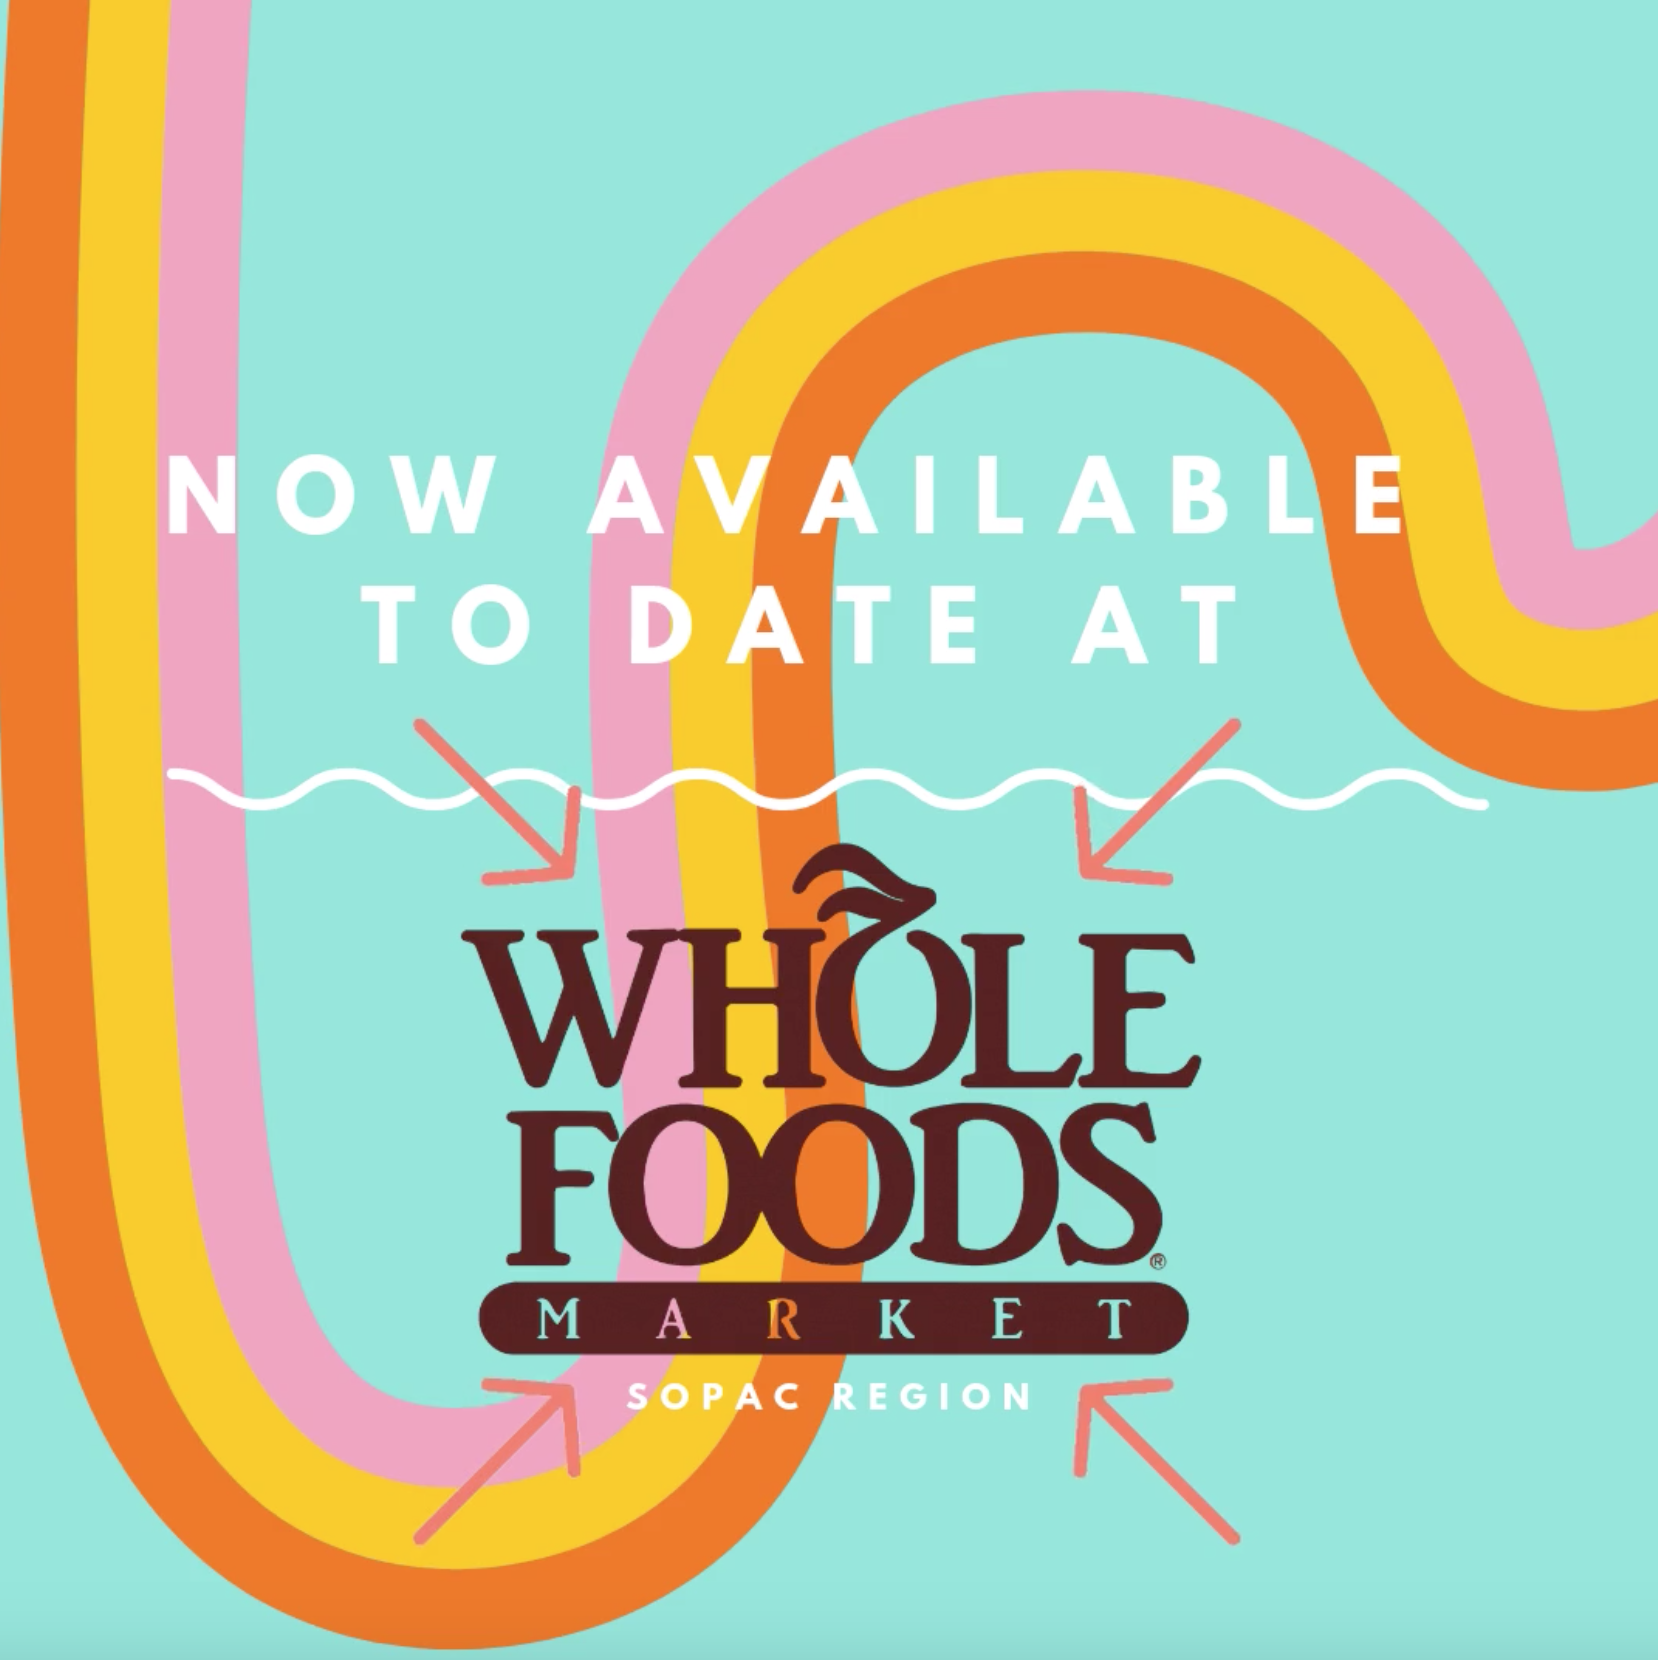 Dreams Really Do Come True You Can Now Snag Joolies At Whole Foods Sopac Region Not In The Sopac Region Han Whole Food Recipes Whole Foods Market Dating